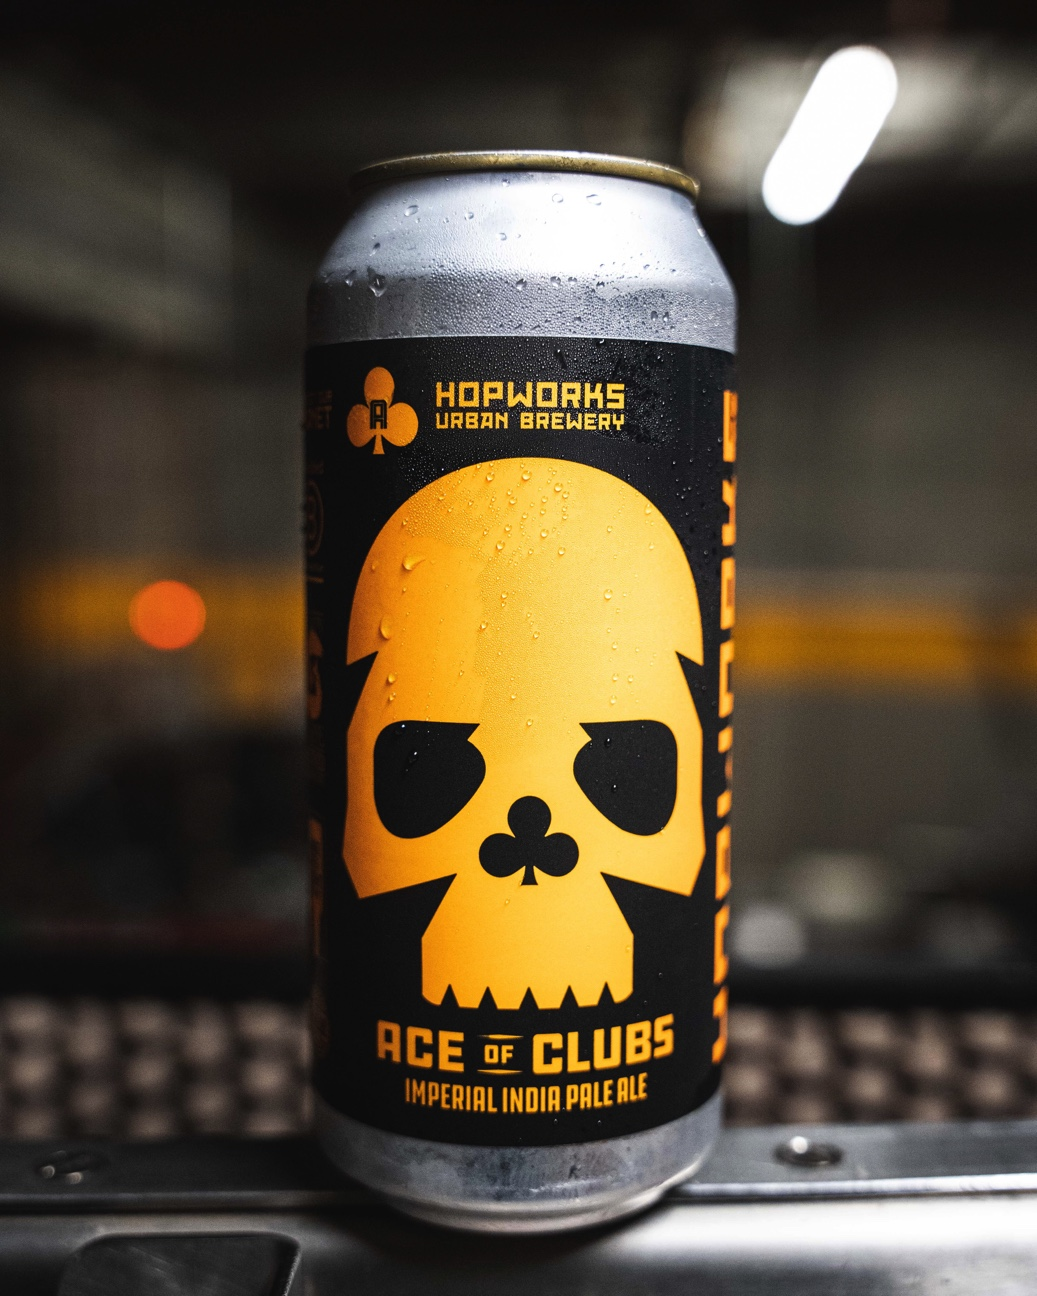 image of Ace of Clubs Imperial India Pale Ale courtesy of Hopworks Urban Brewery